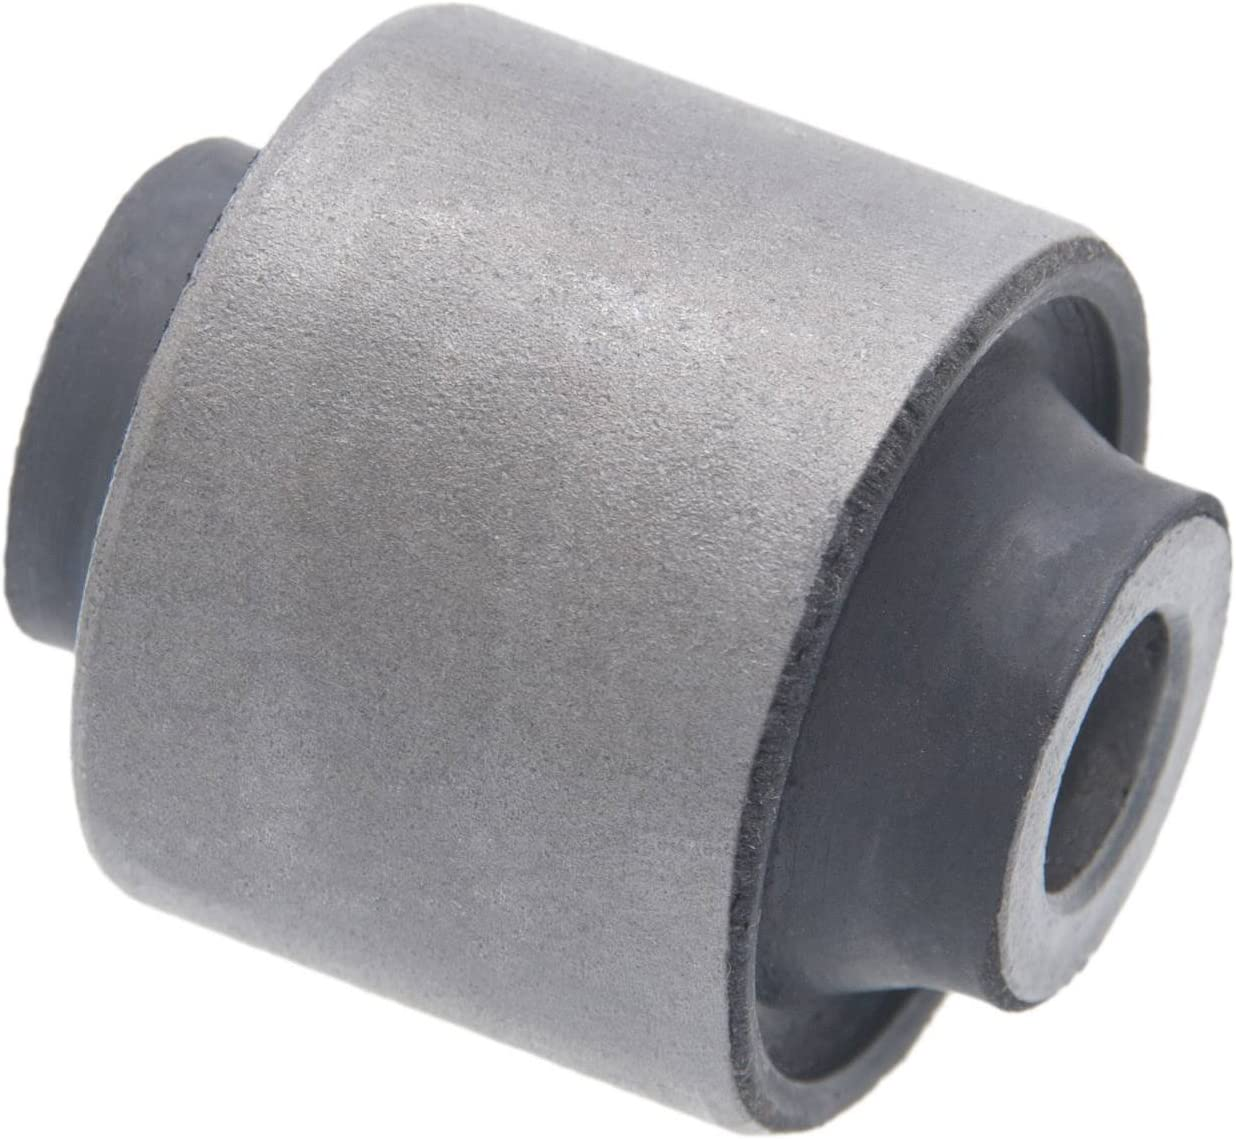 For GM Vehicles Febest 96440024 Arm Bushing for Rear Assembly